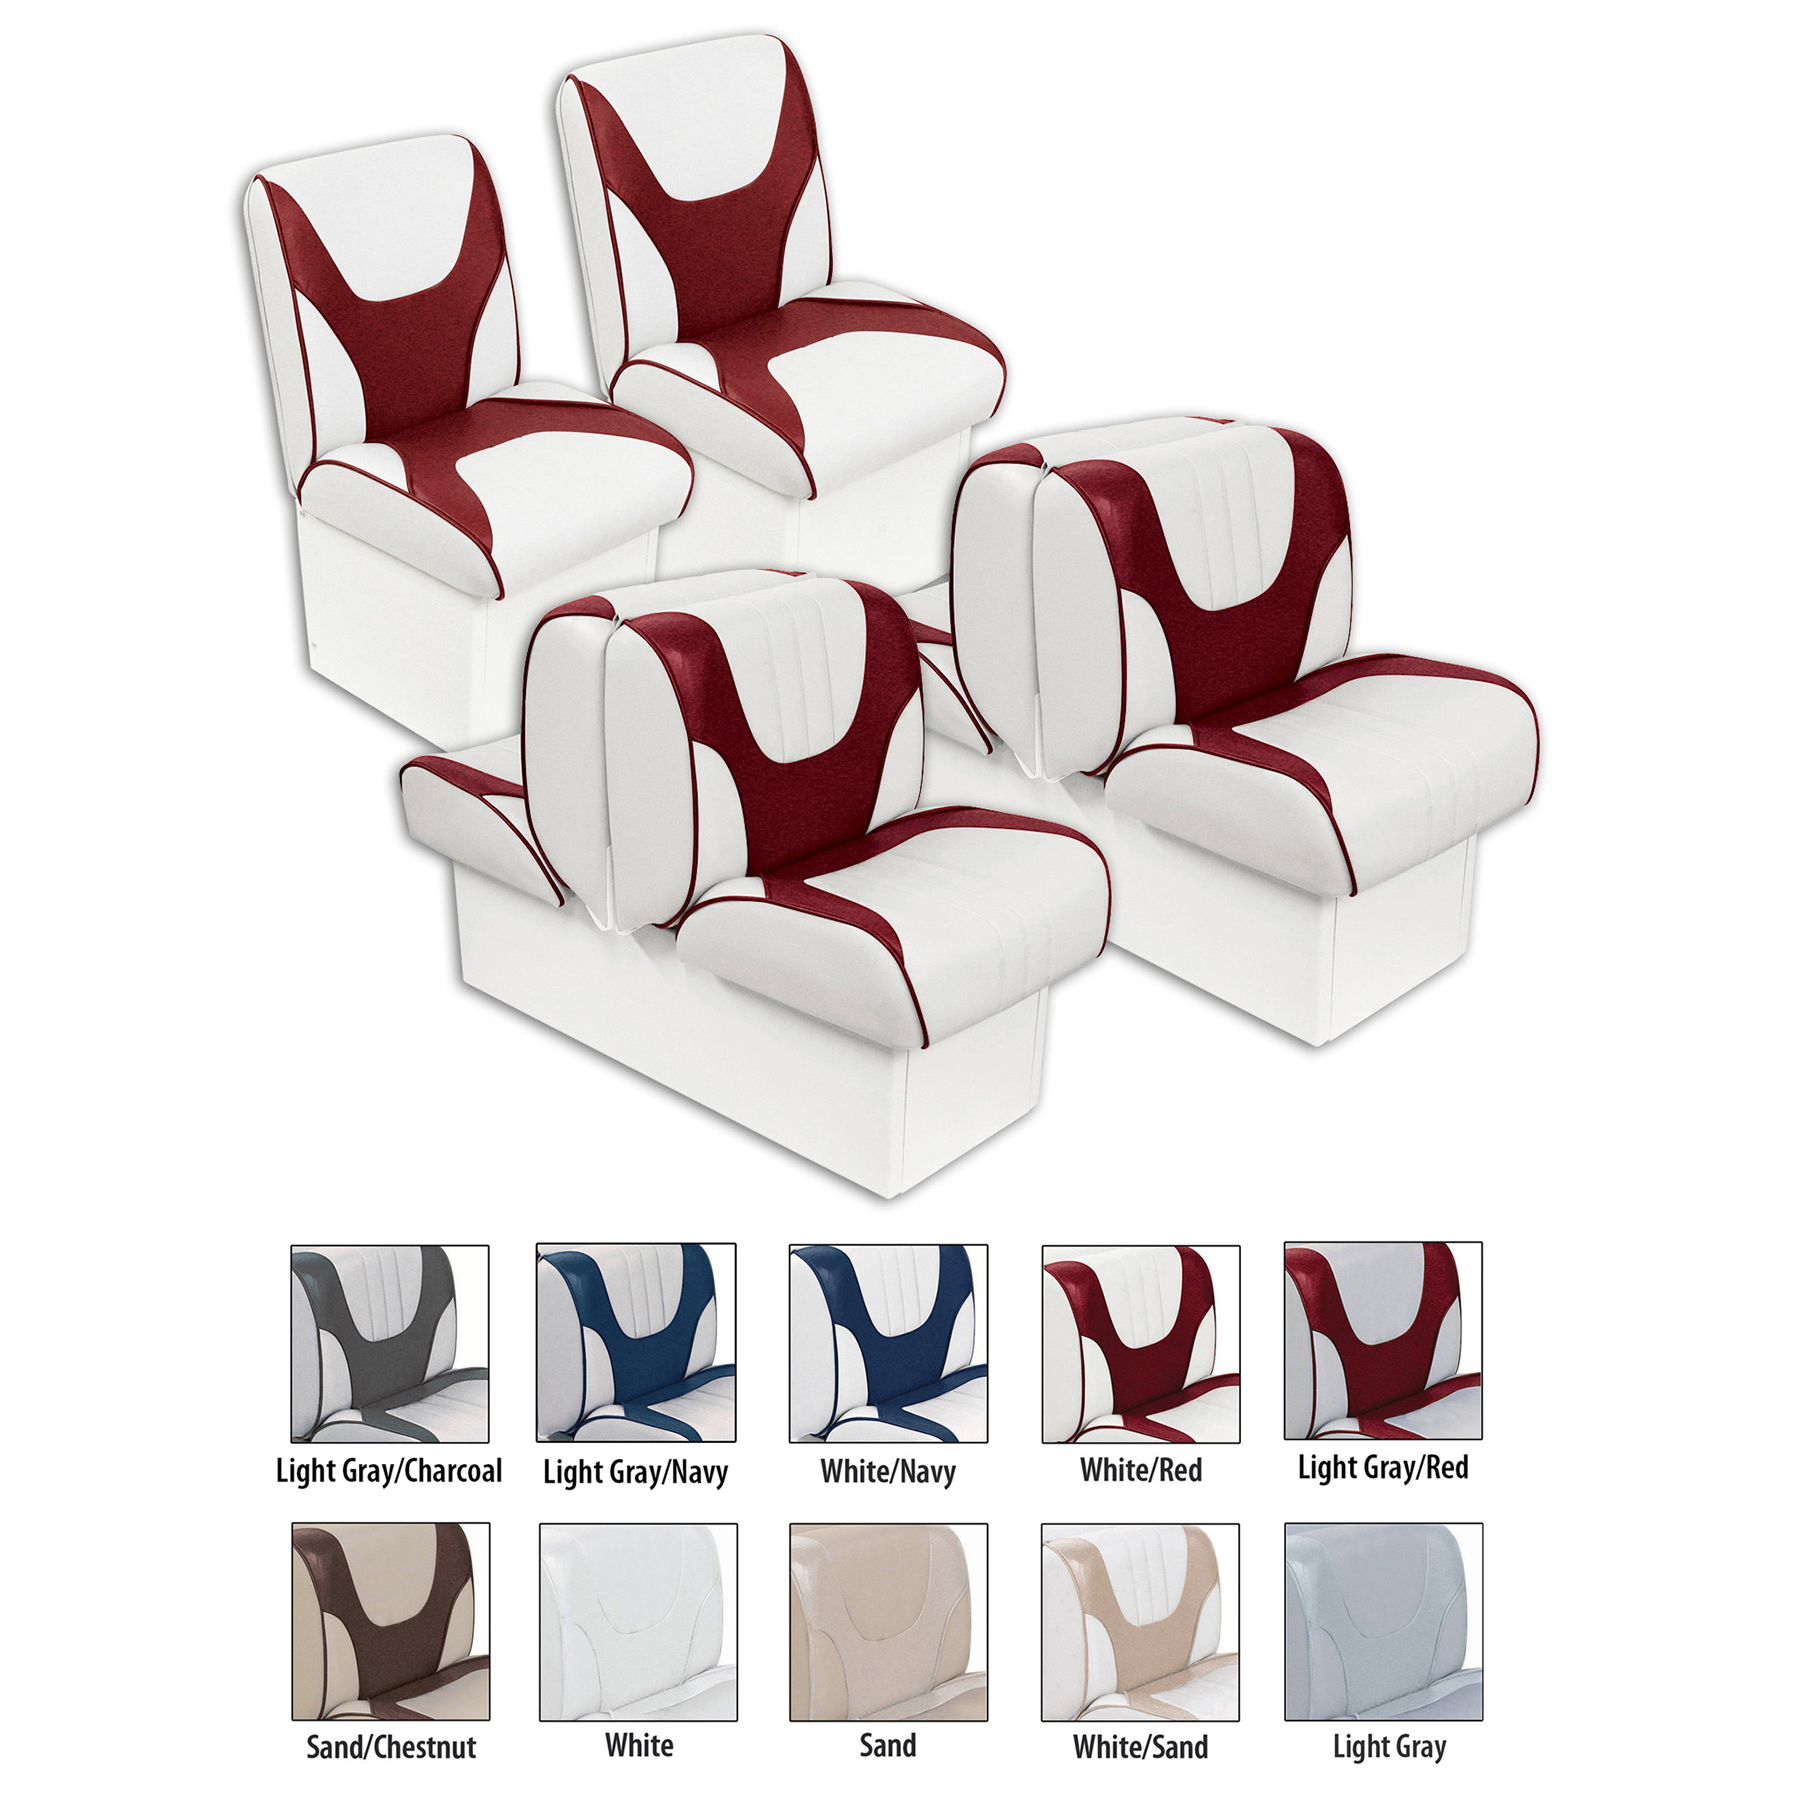 Overton's Deluxe Boat Seat Package with 10